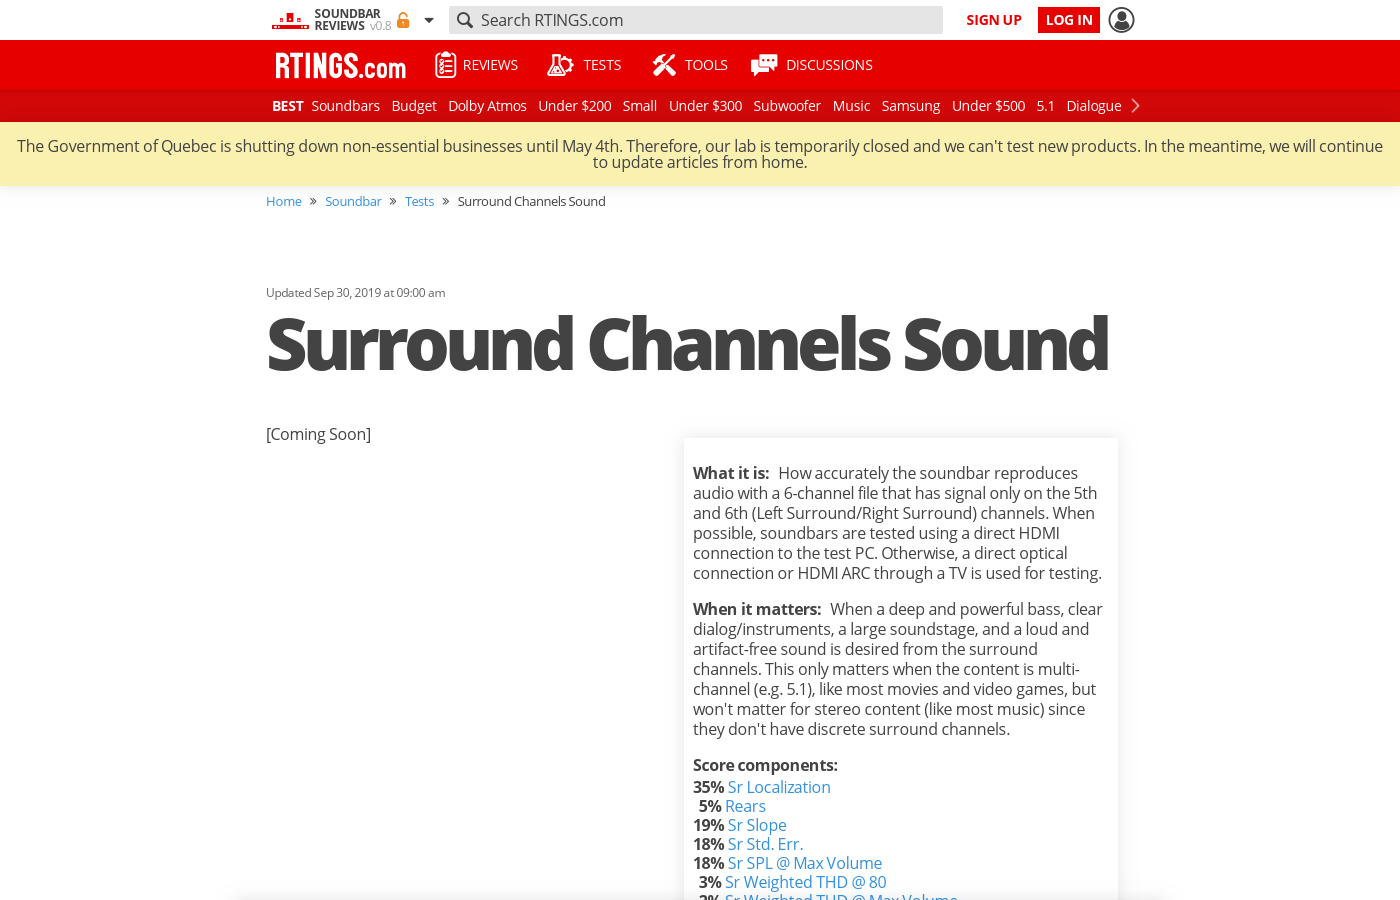 Surround Channels Sound